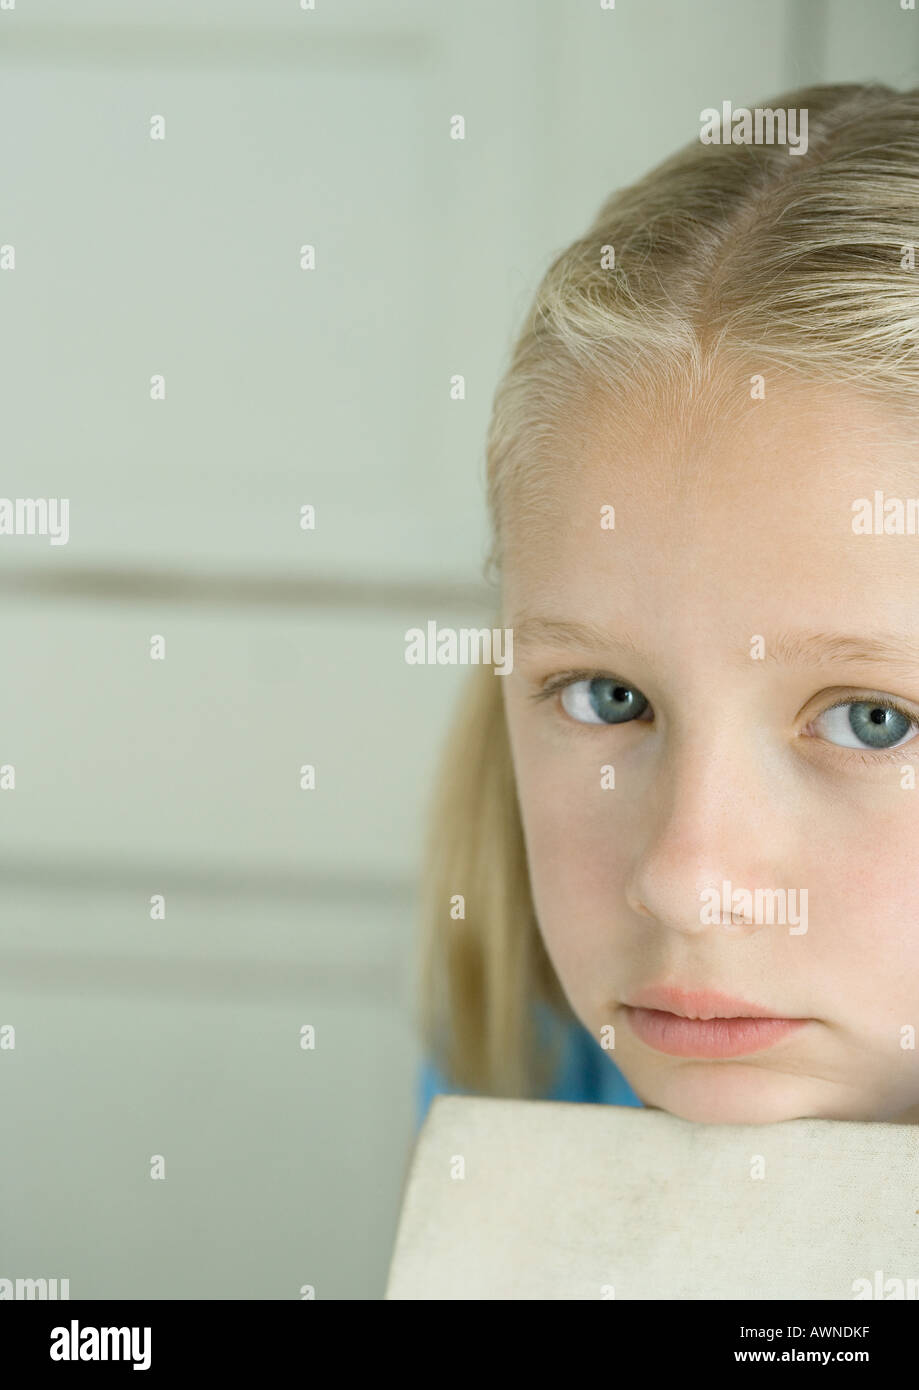 Girl resting head on edge of book, looking at camera - Stock Image